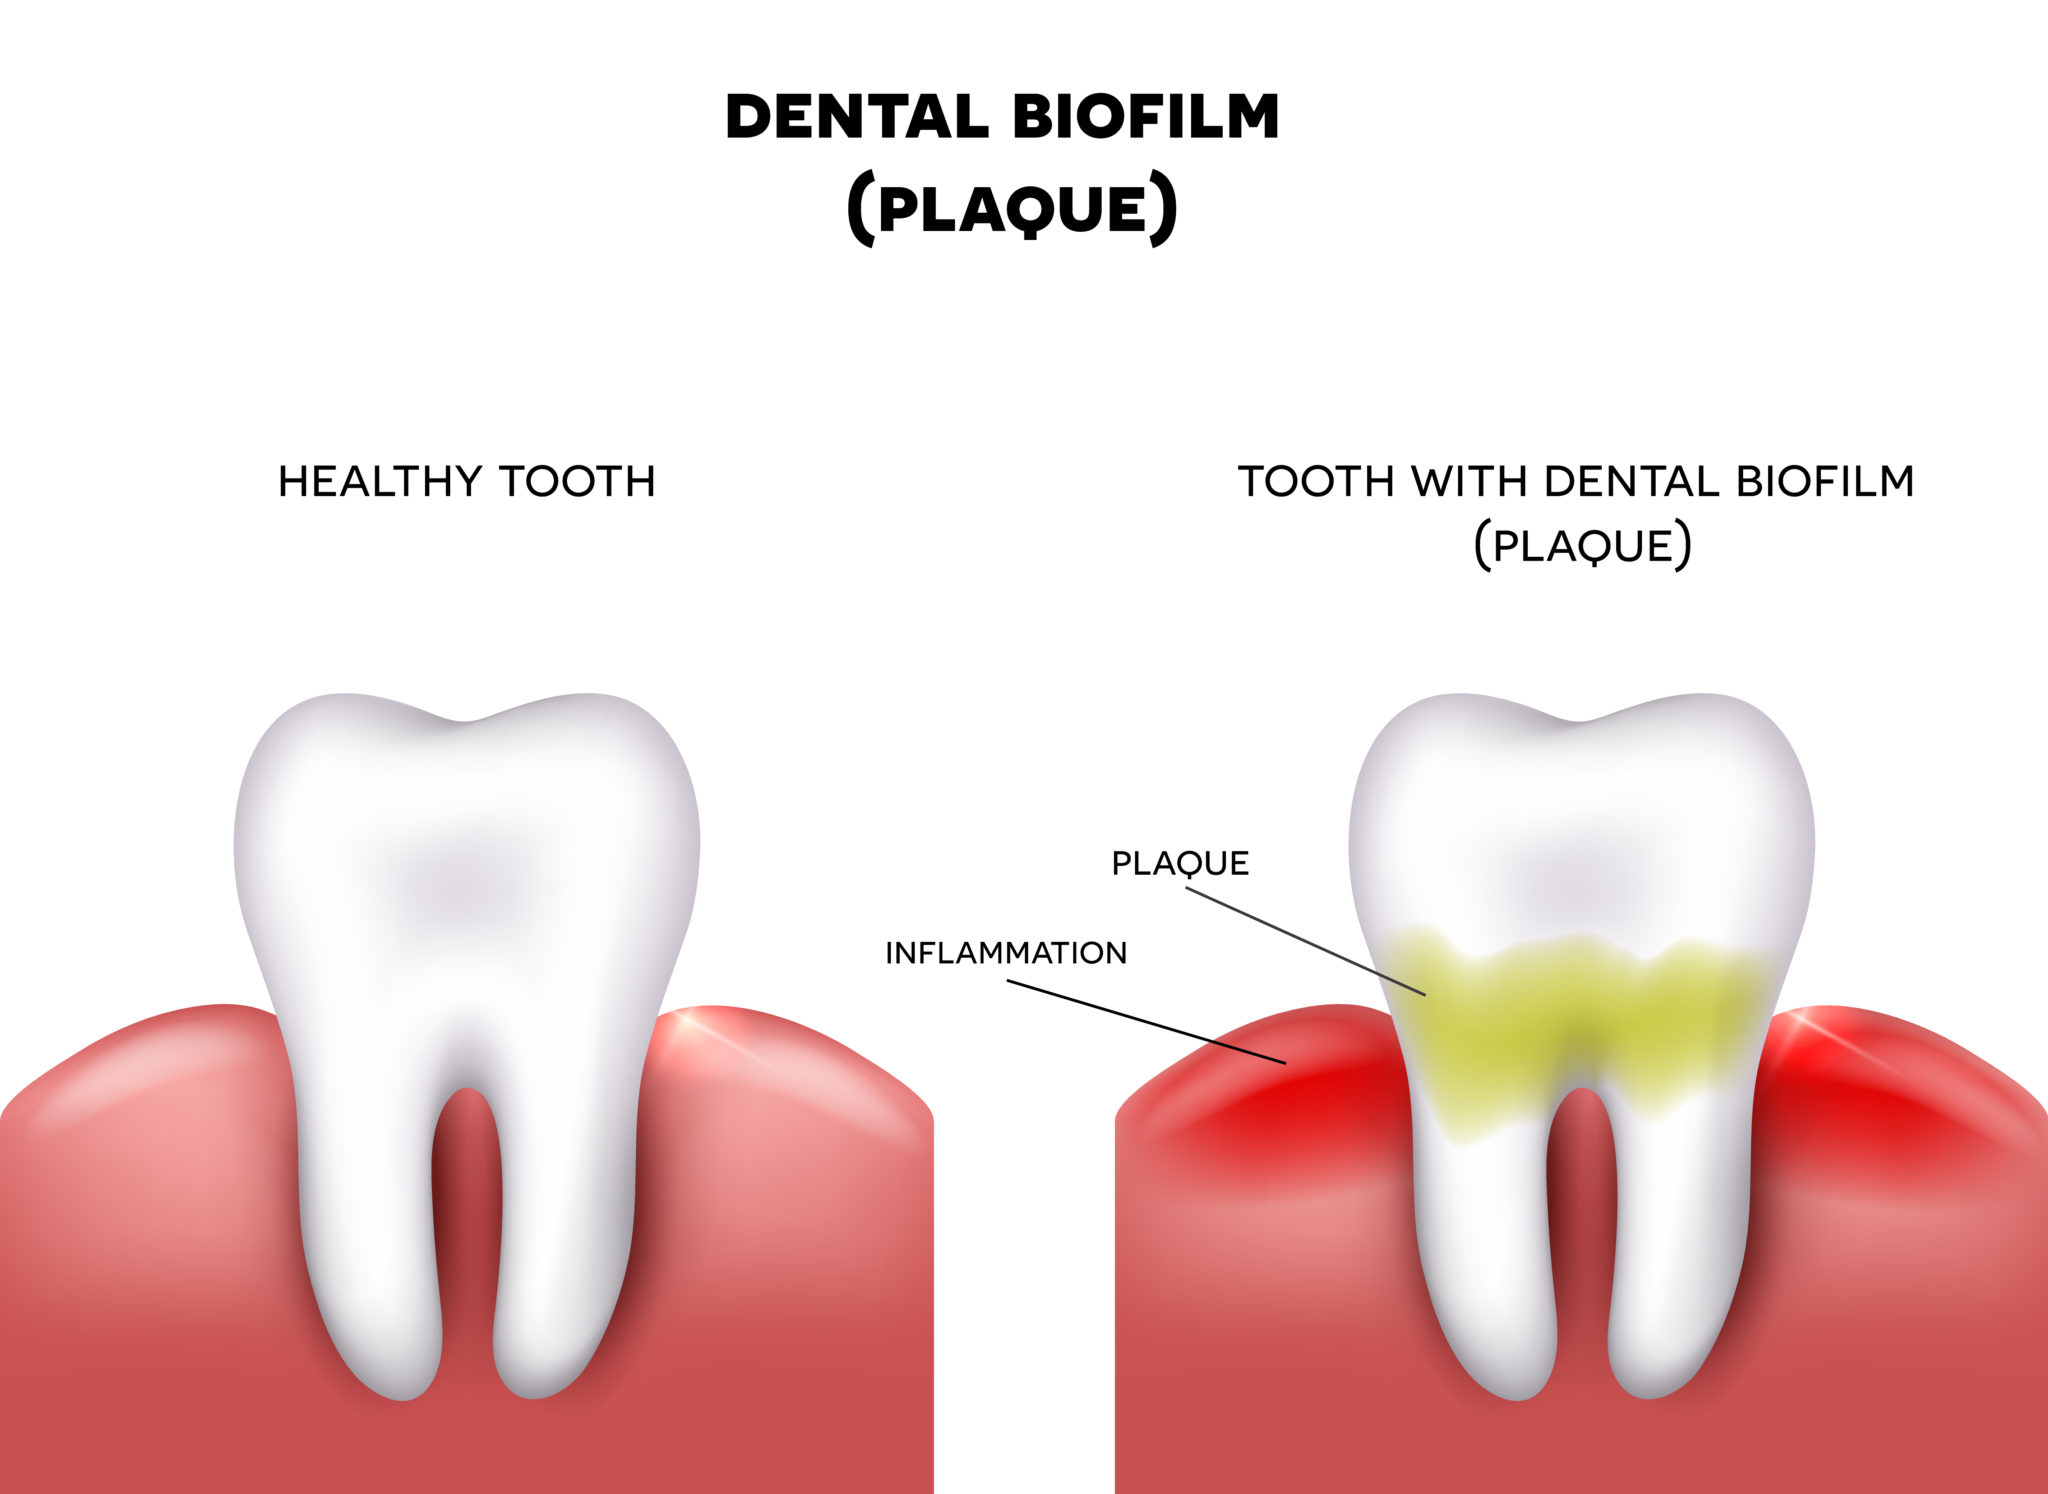 Why Dental Plaque and Tartar Need to Be Removed from Teeth